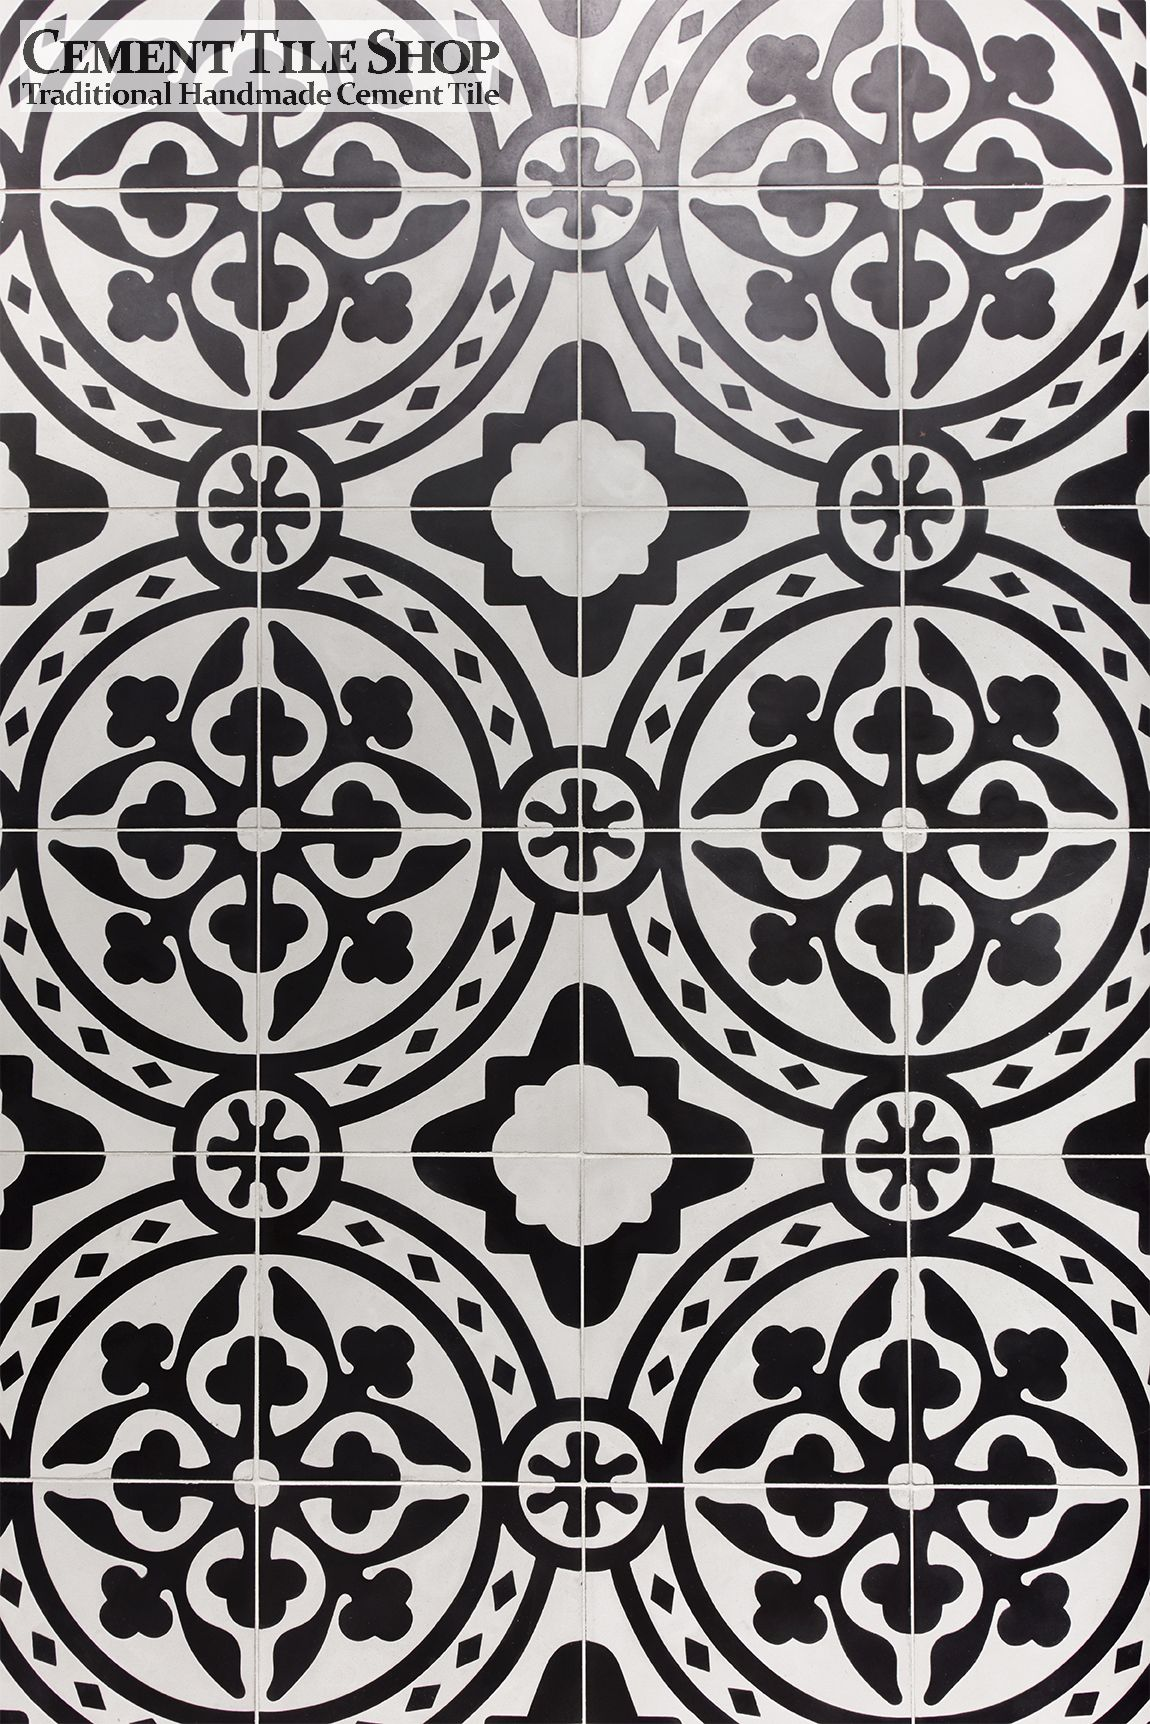 Schmauder Group - Cement Tile Shop - Bristol Pattern 4